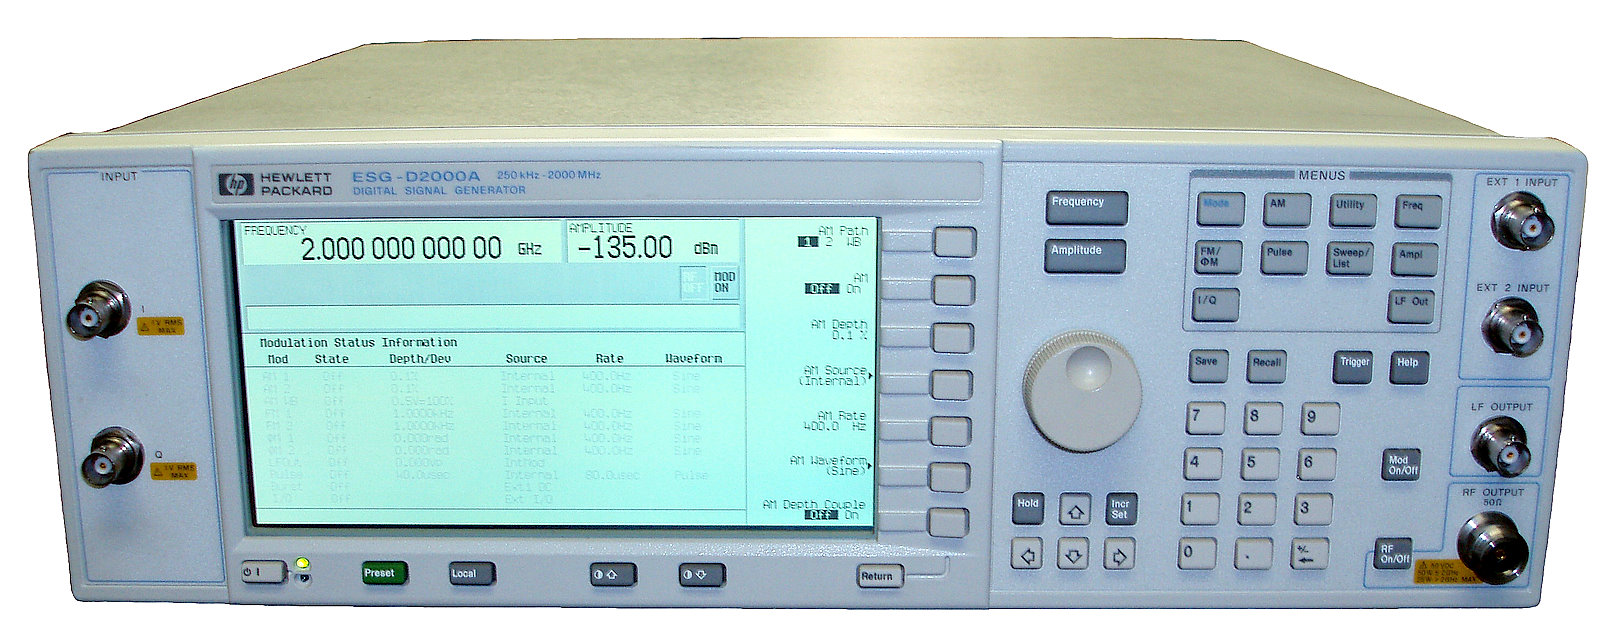 Agilent (HP) E4431A RF Signal Generator with Built-in Digital Modulation Formats for DECT, GSM, NADC, PDC, PHS, and TETRA